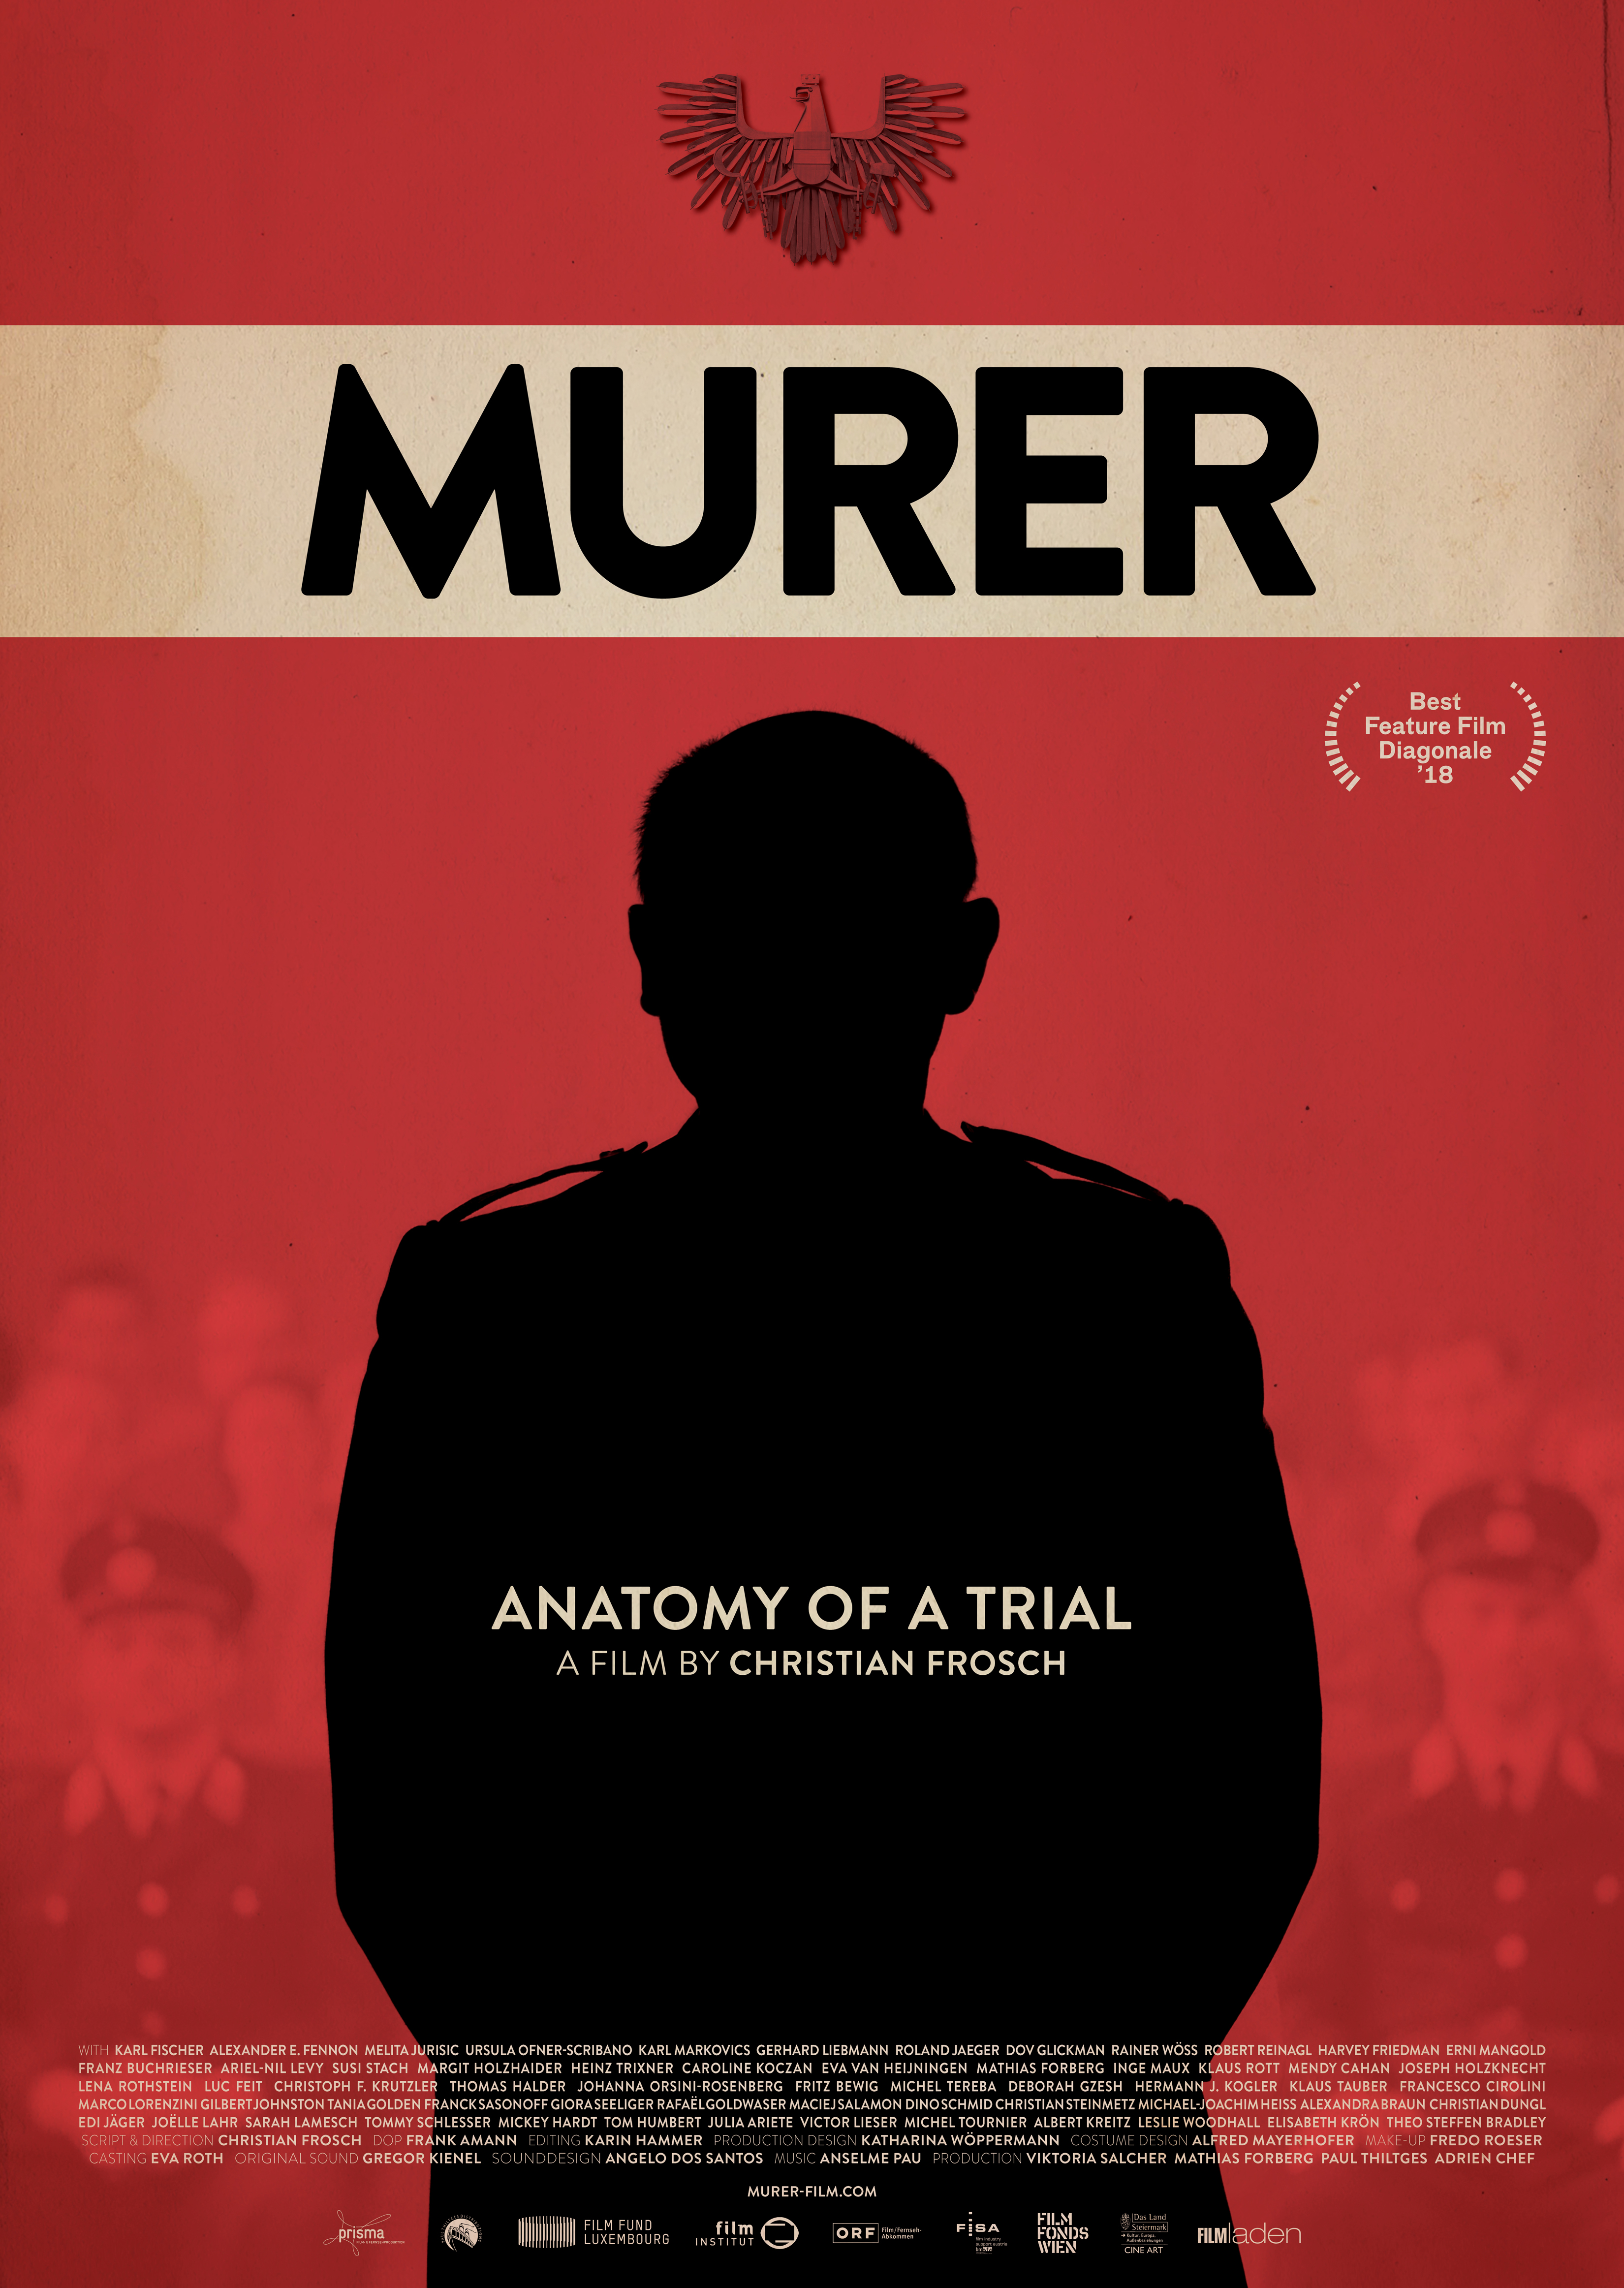 anatomy of a jury Otto preminger's anatomy of a murder studiously avoids hard conclusions of any kindbut if it does have a statement of purpose, it comes out a brief and funny little scene where a judge confers with the lawyers on the bench of a murder trial.